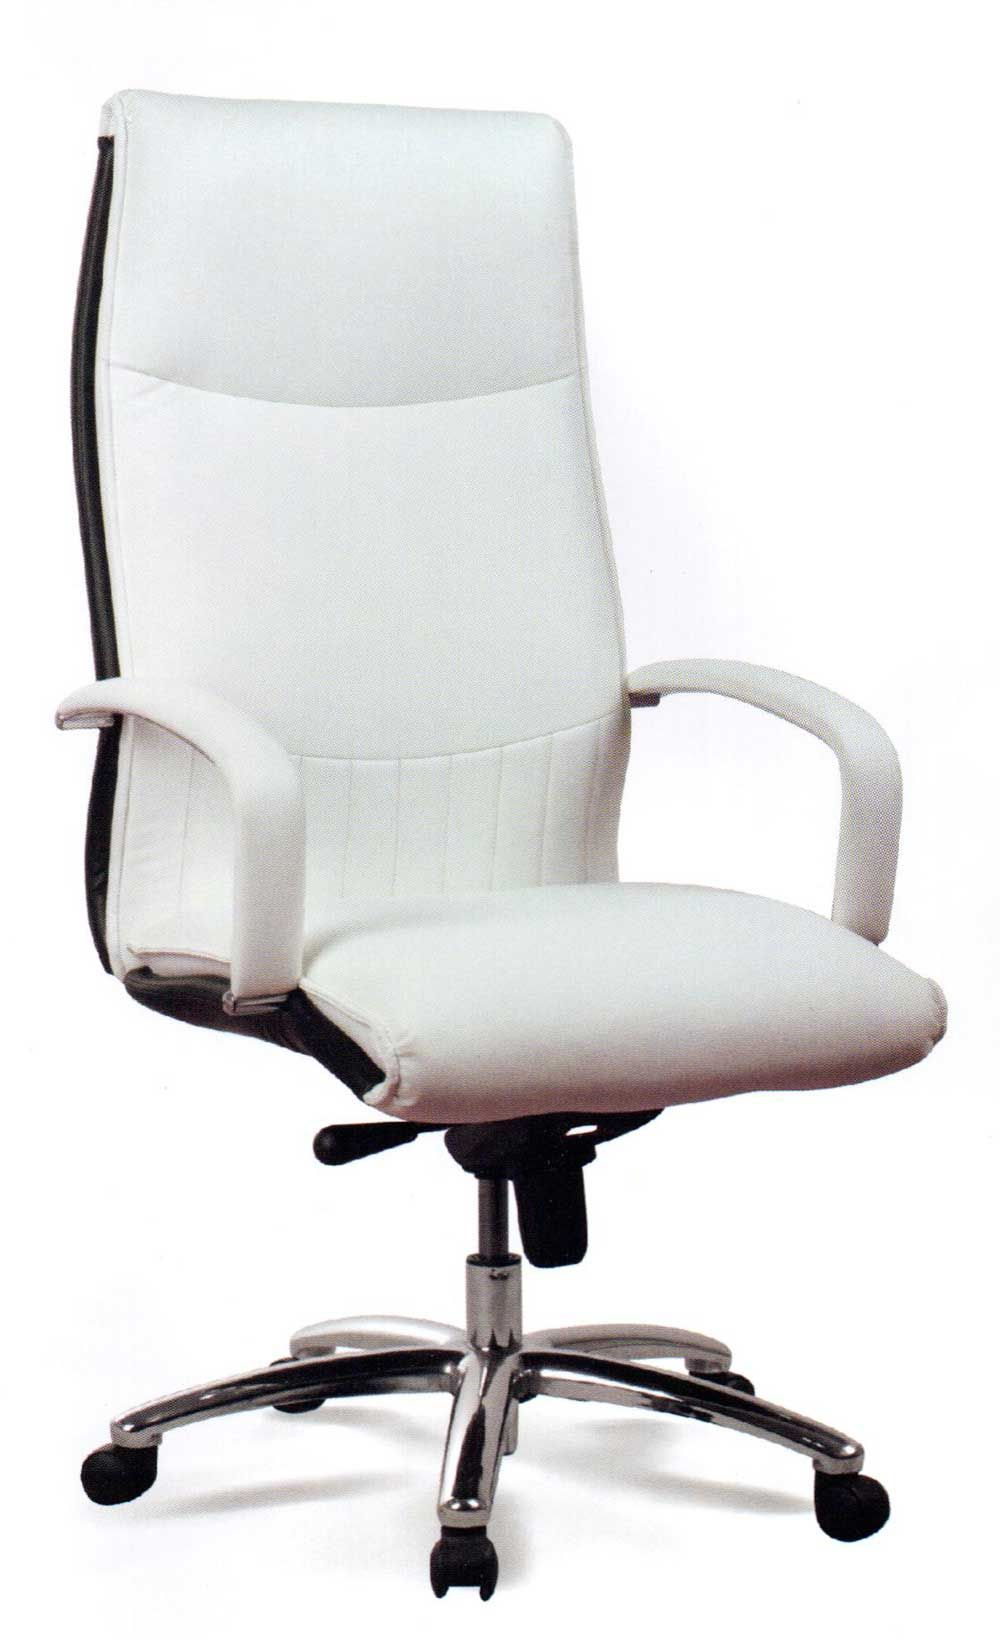 Delicieux Ergonomic Executive White Leather Office Chair